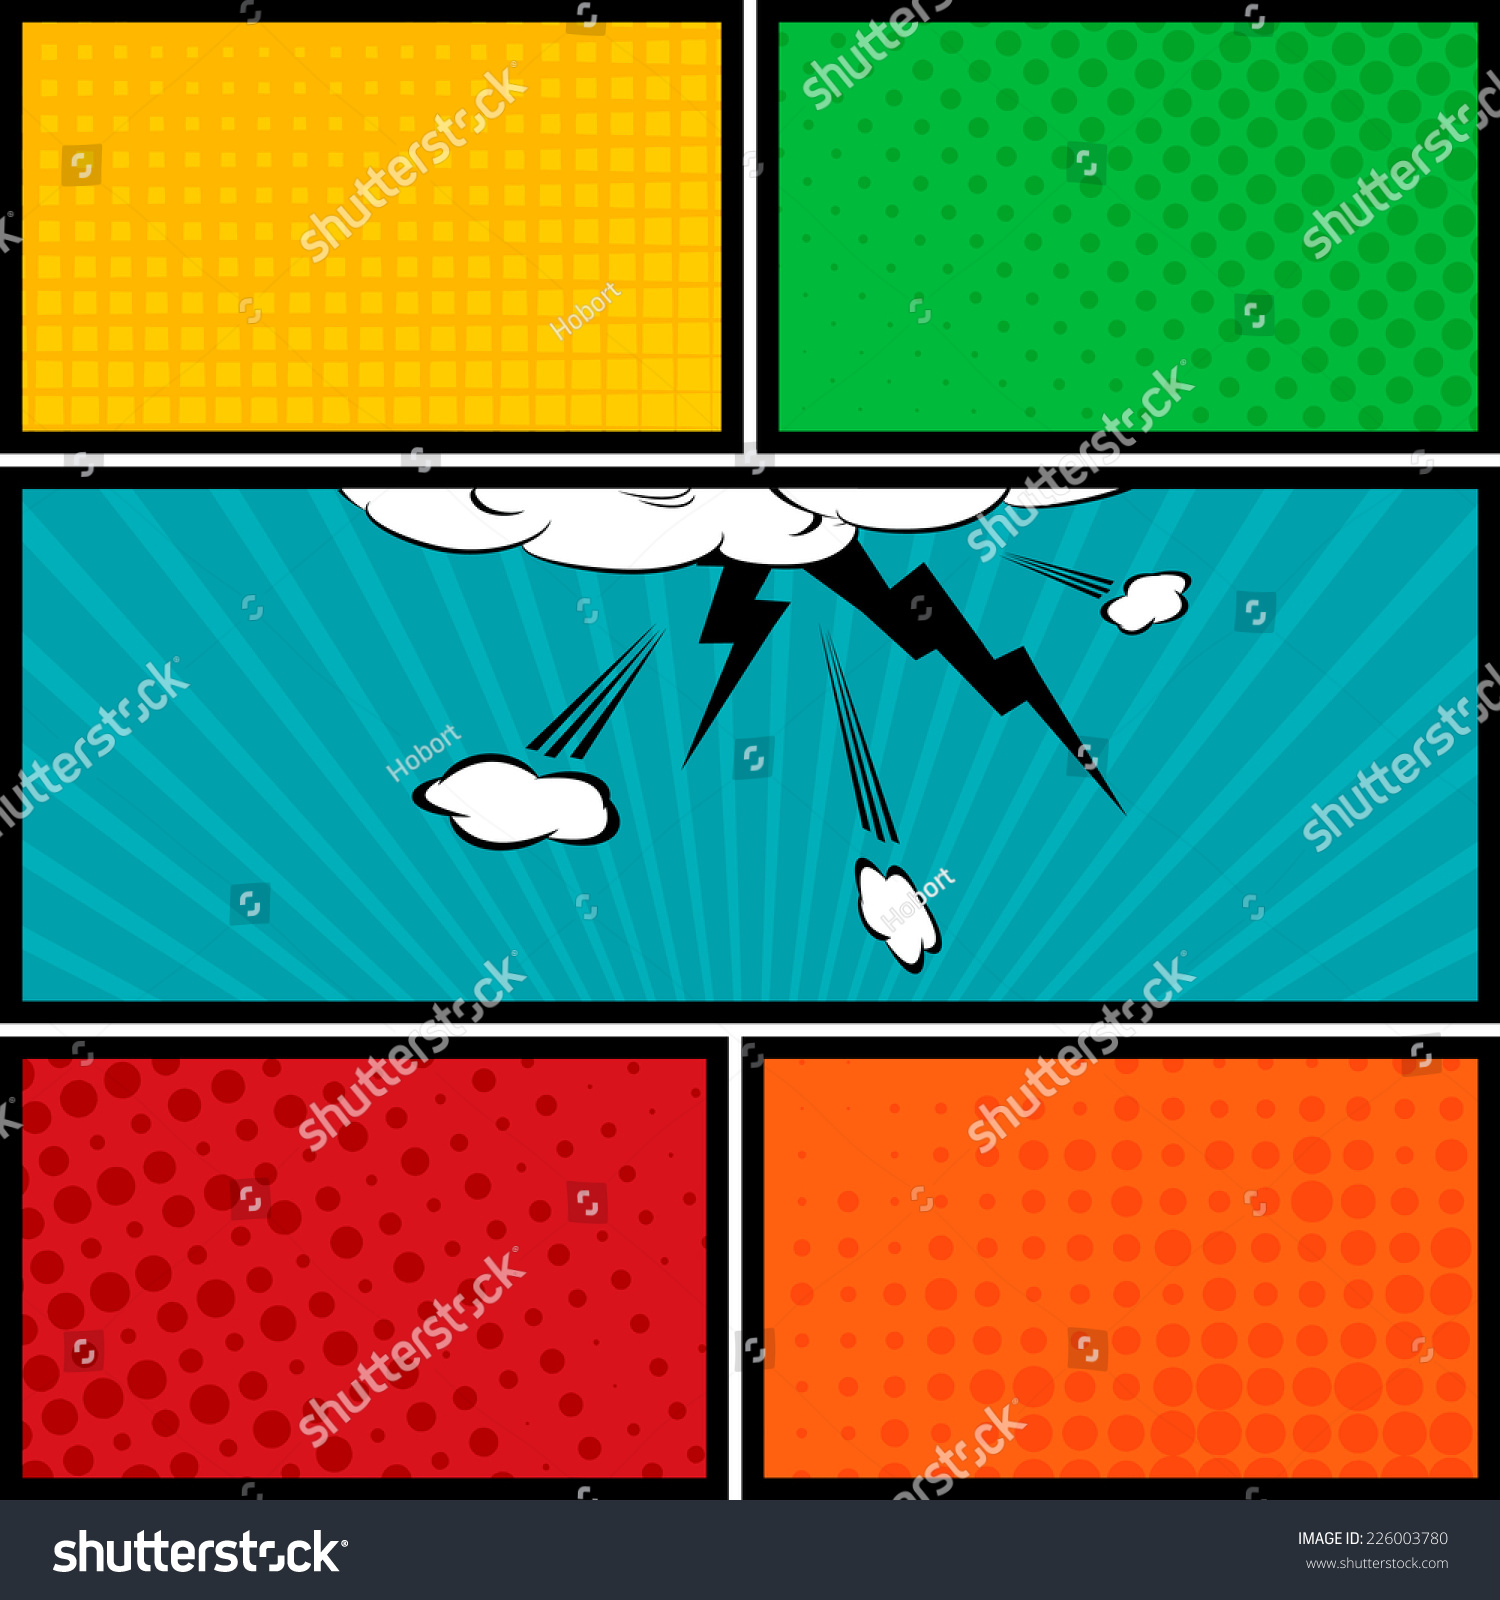 Comic Speech Bubbles And Comic Strip Background Vector Illustration ...